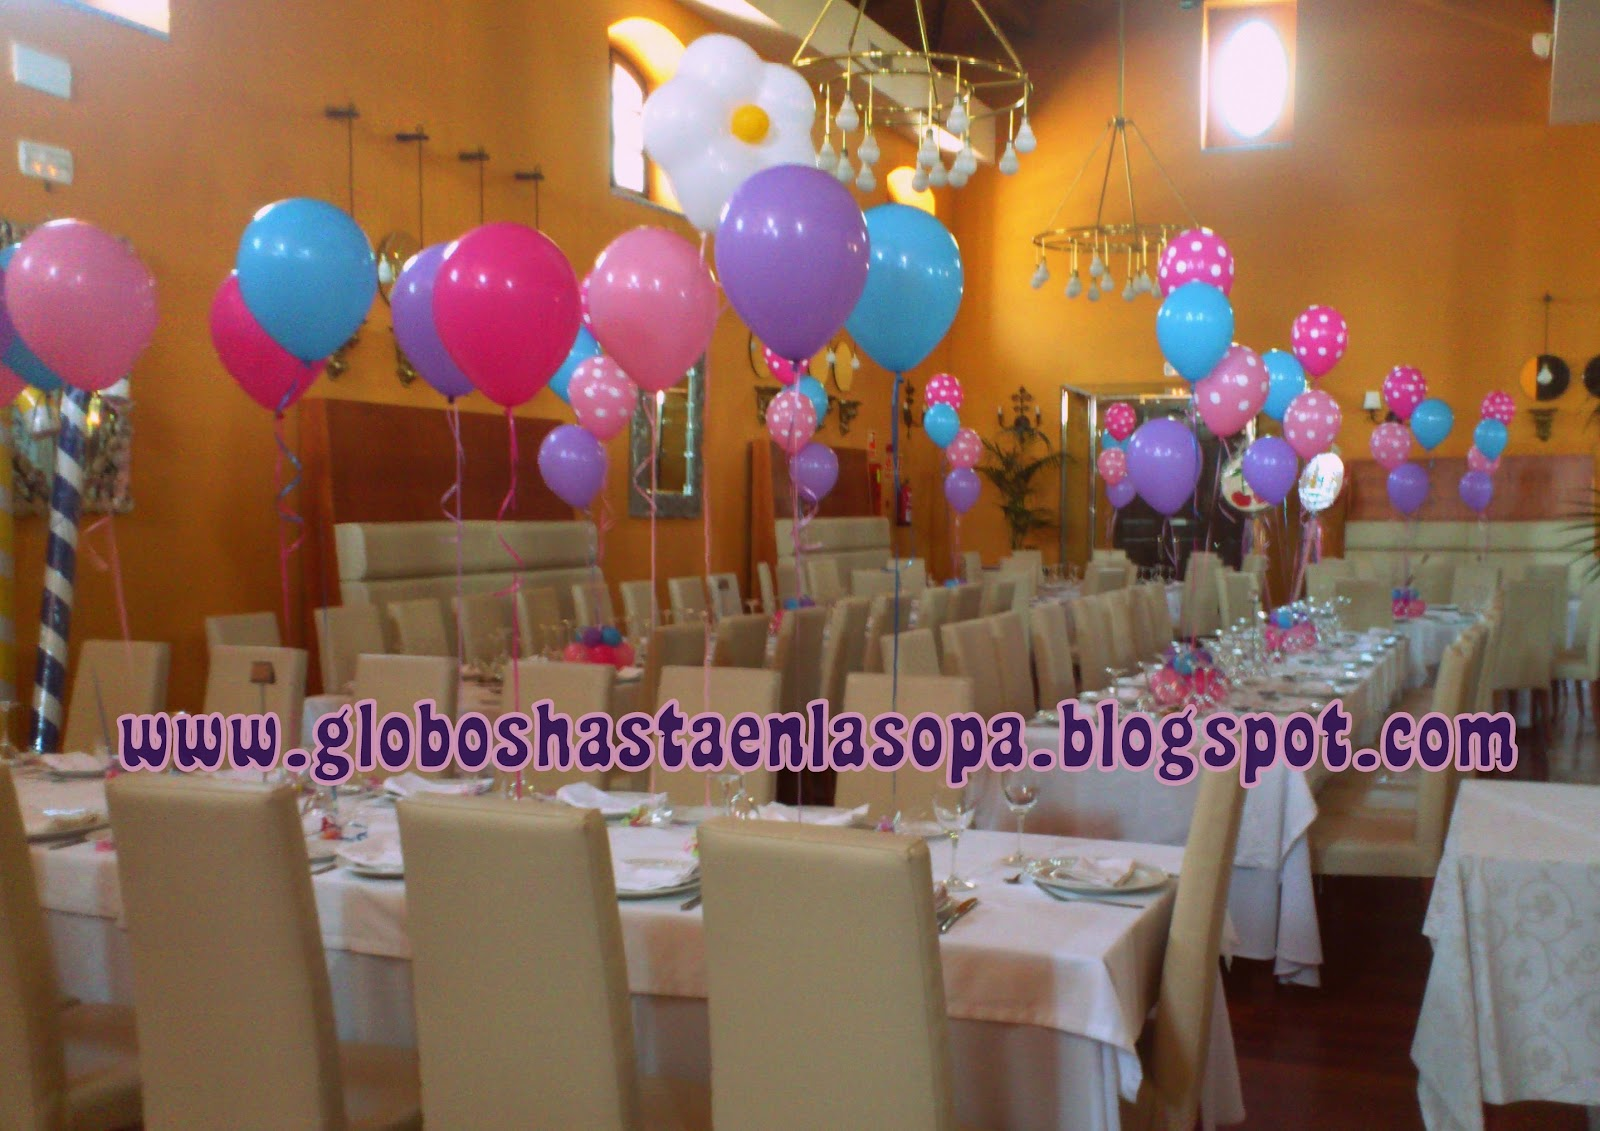 Como Decorar Un Local Para Matrimonio Decoration42 Decoracion Con Globos Para Bautizo